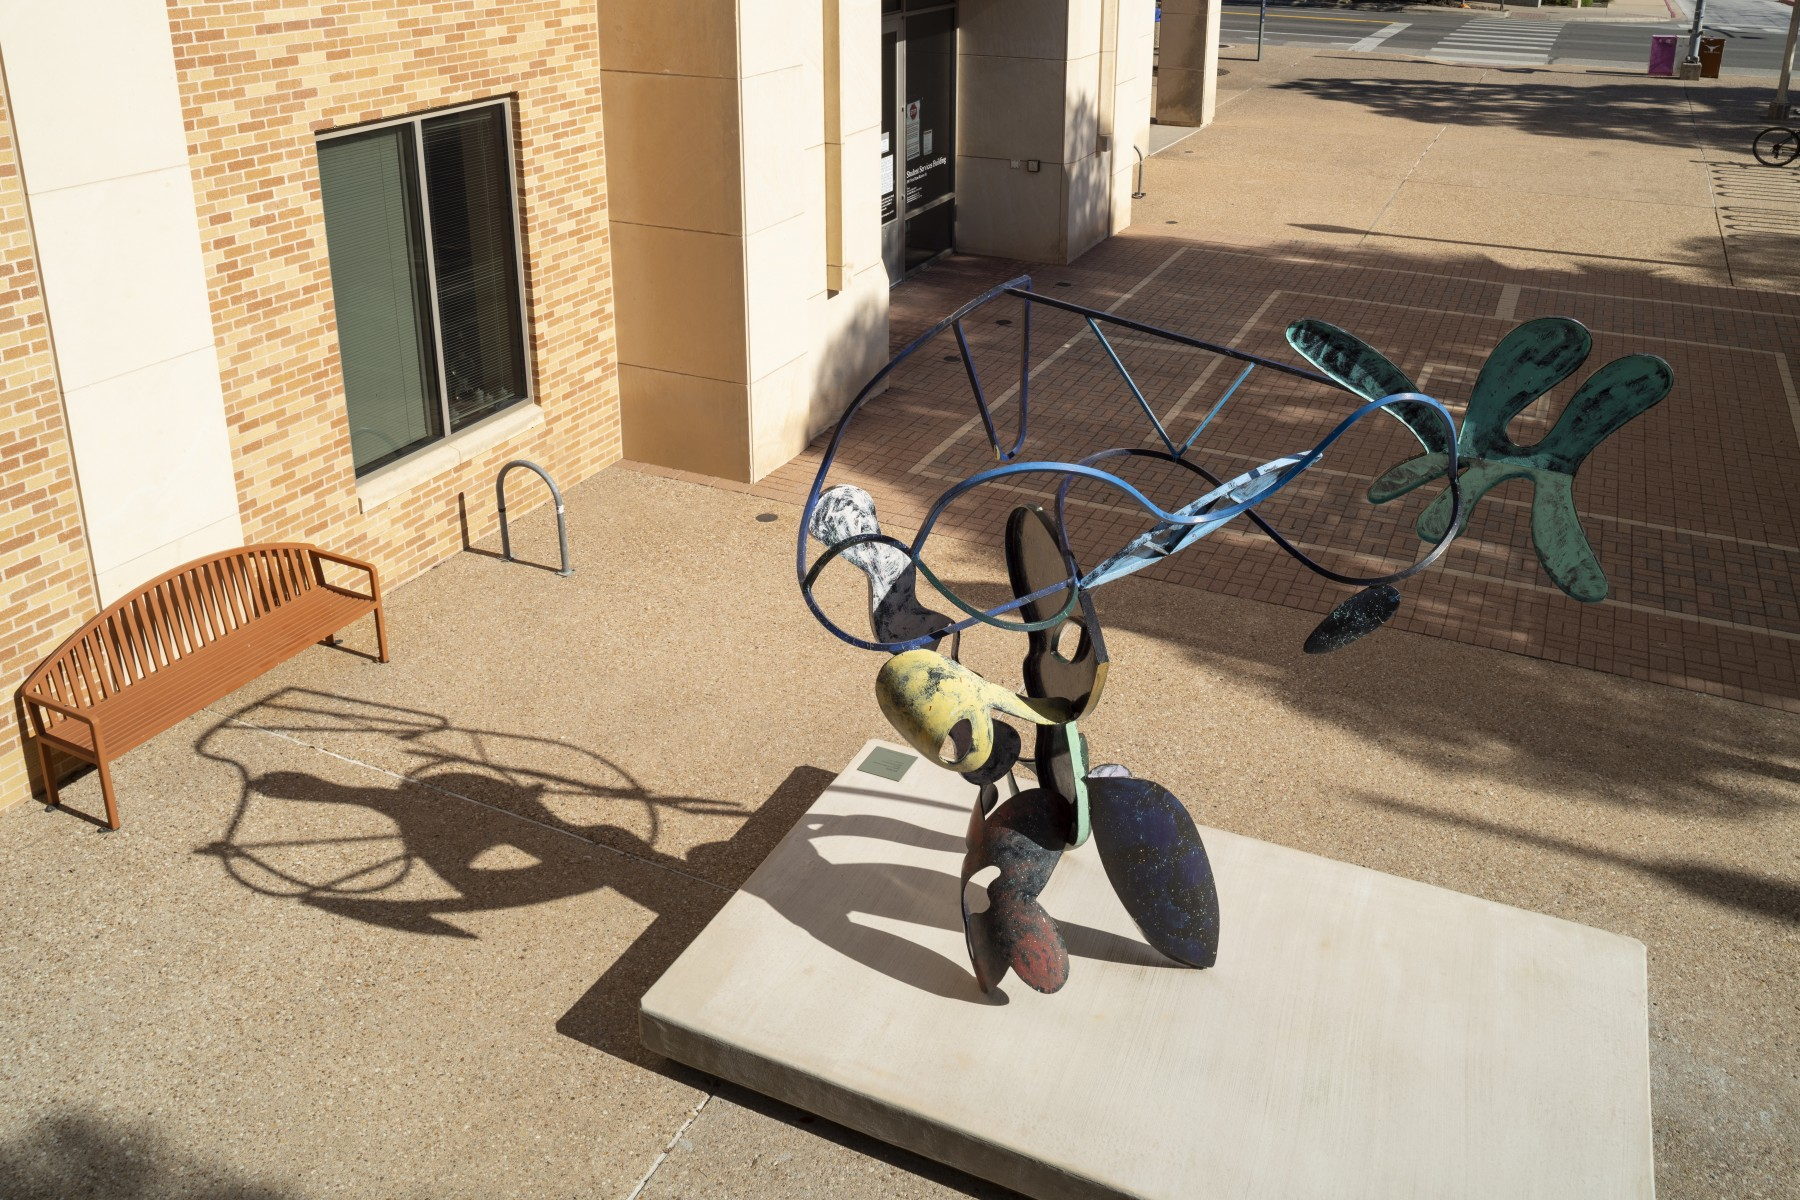 A large bendy sculpture with parts colored in different colors in a courtyard as seen from above